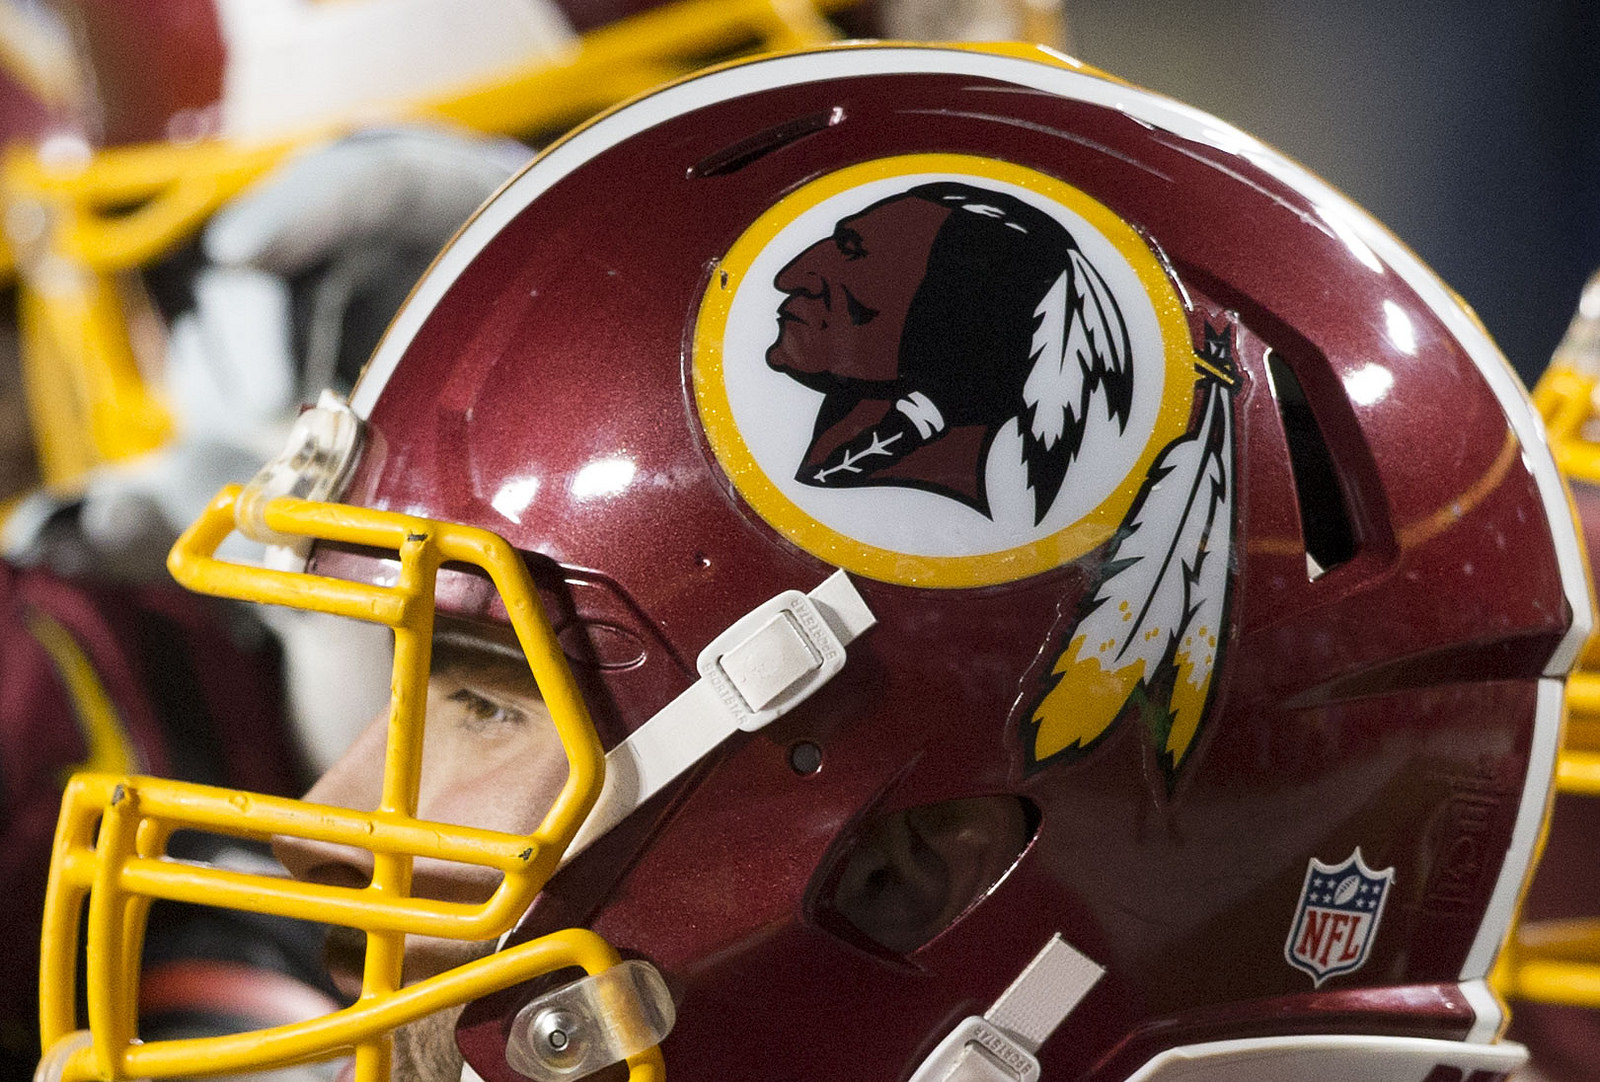 'Indian' Mascots Are a Slap in the Face